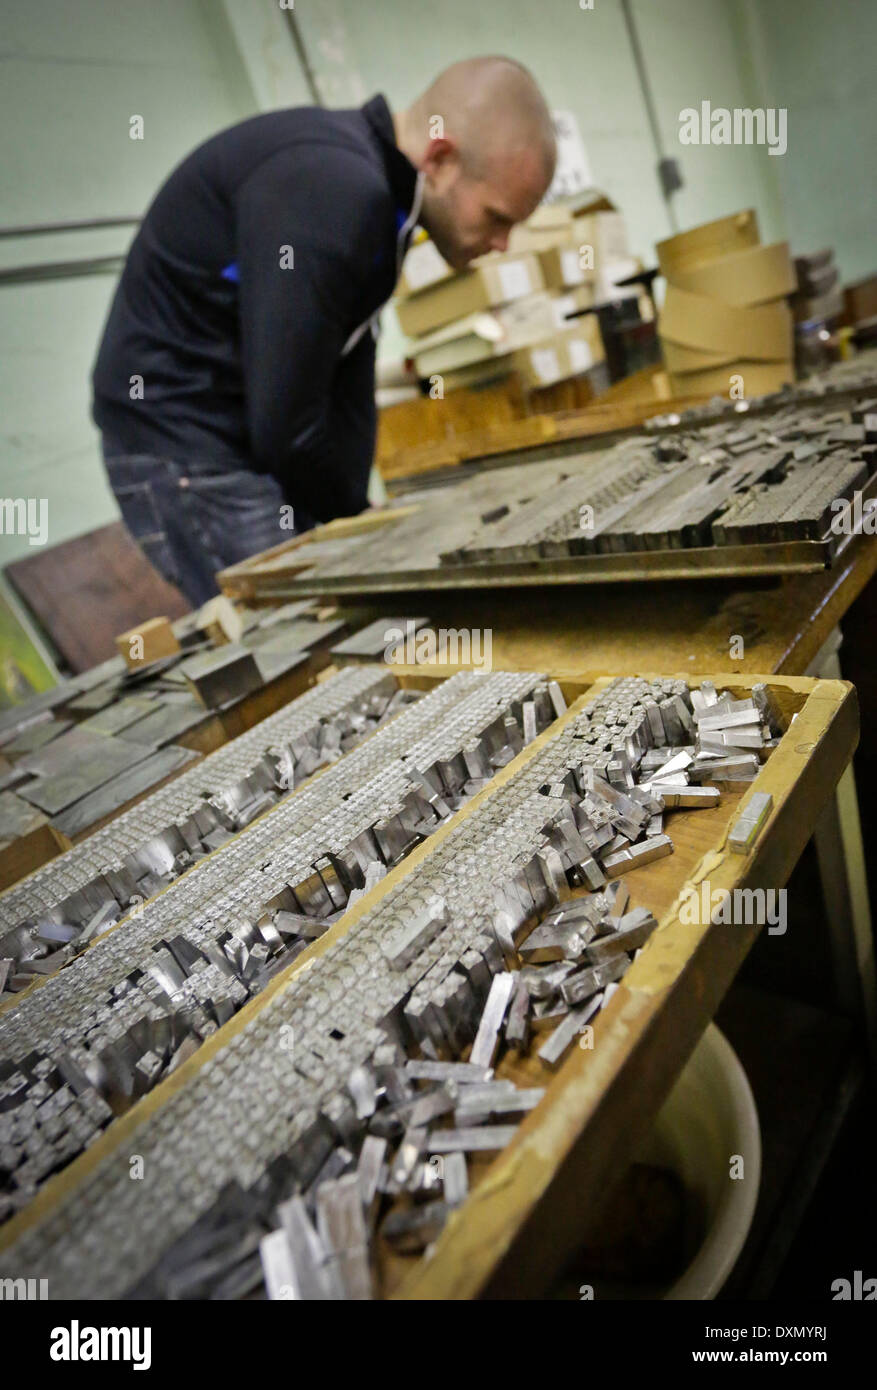 Vancouver, Canada. 27th Mar, 2014. An antique collector looks for assorted Chinese typeset characters at Ho Sun Hing Printers in Chinatown in Vancouver, Canada, March 27, 2014. After more than 100 years in business and three generations of family, Ho Sun Hing Printers in Chinatown will close this Friday. The company which opened in 1908 is the first Chinese print shop in Canada. © Liang Sen/Xinhua/Alamy Live News - Stock Image